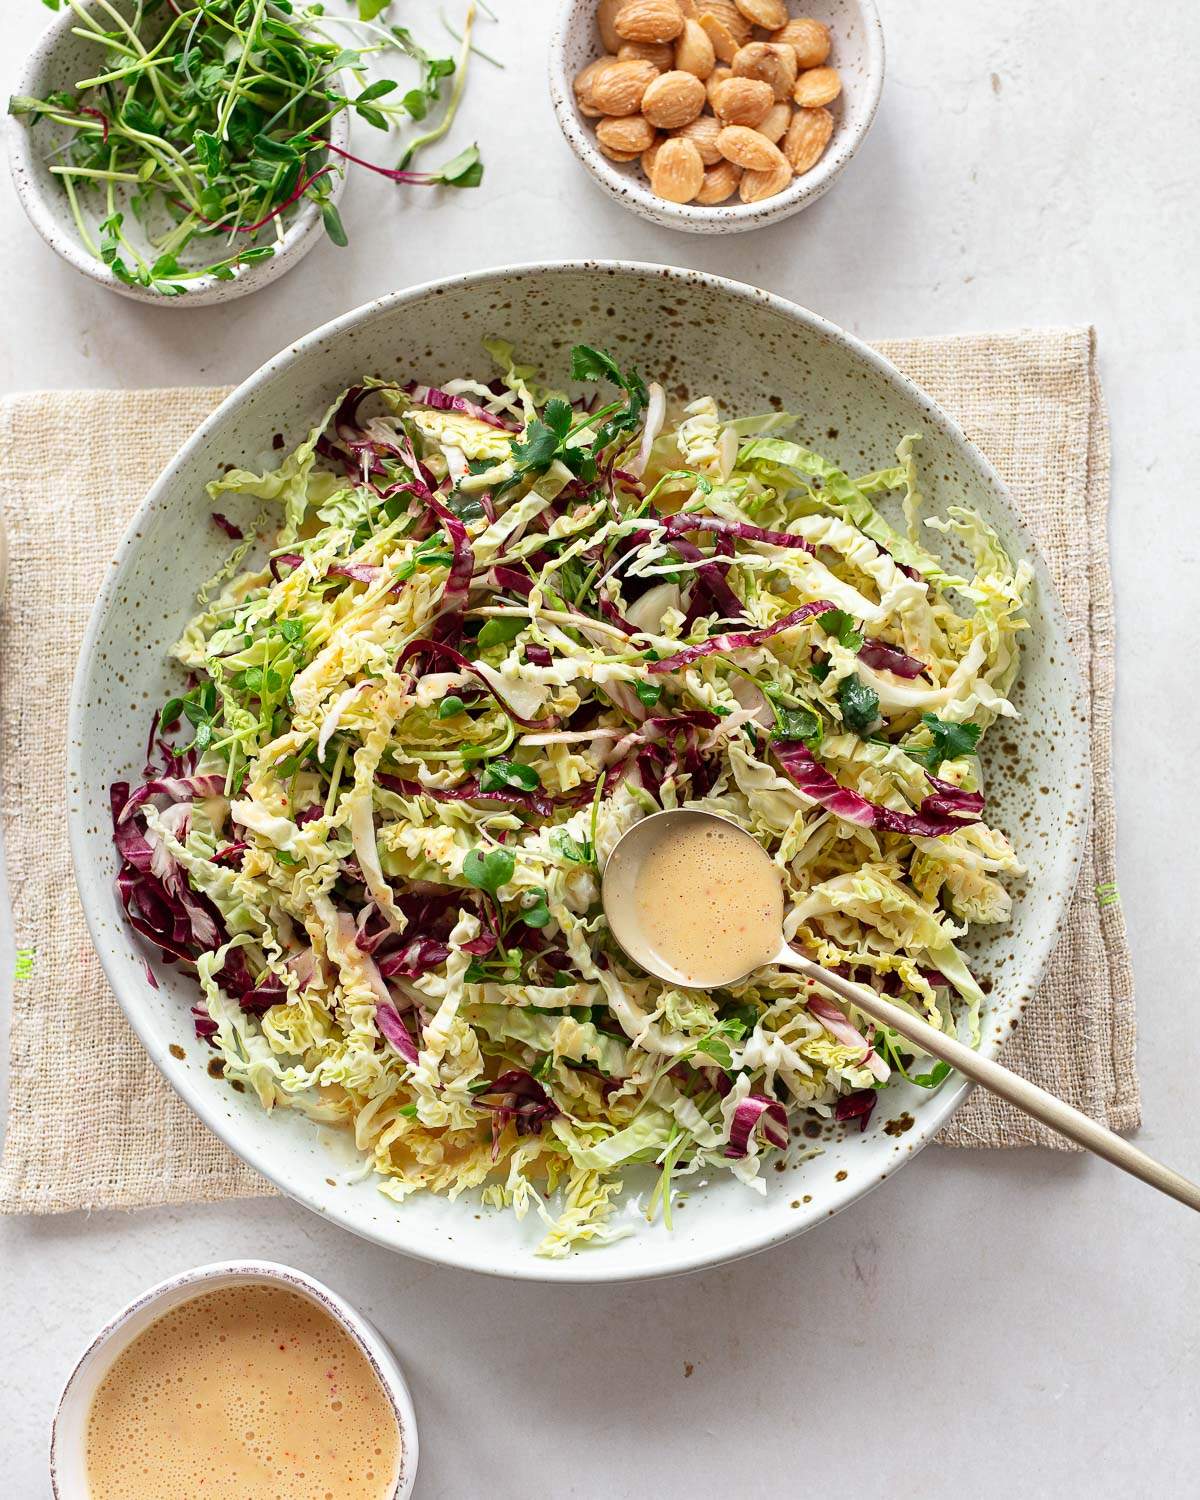 A serving bowl with shredded green cabbage and red cabbage tossed into a slaw.